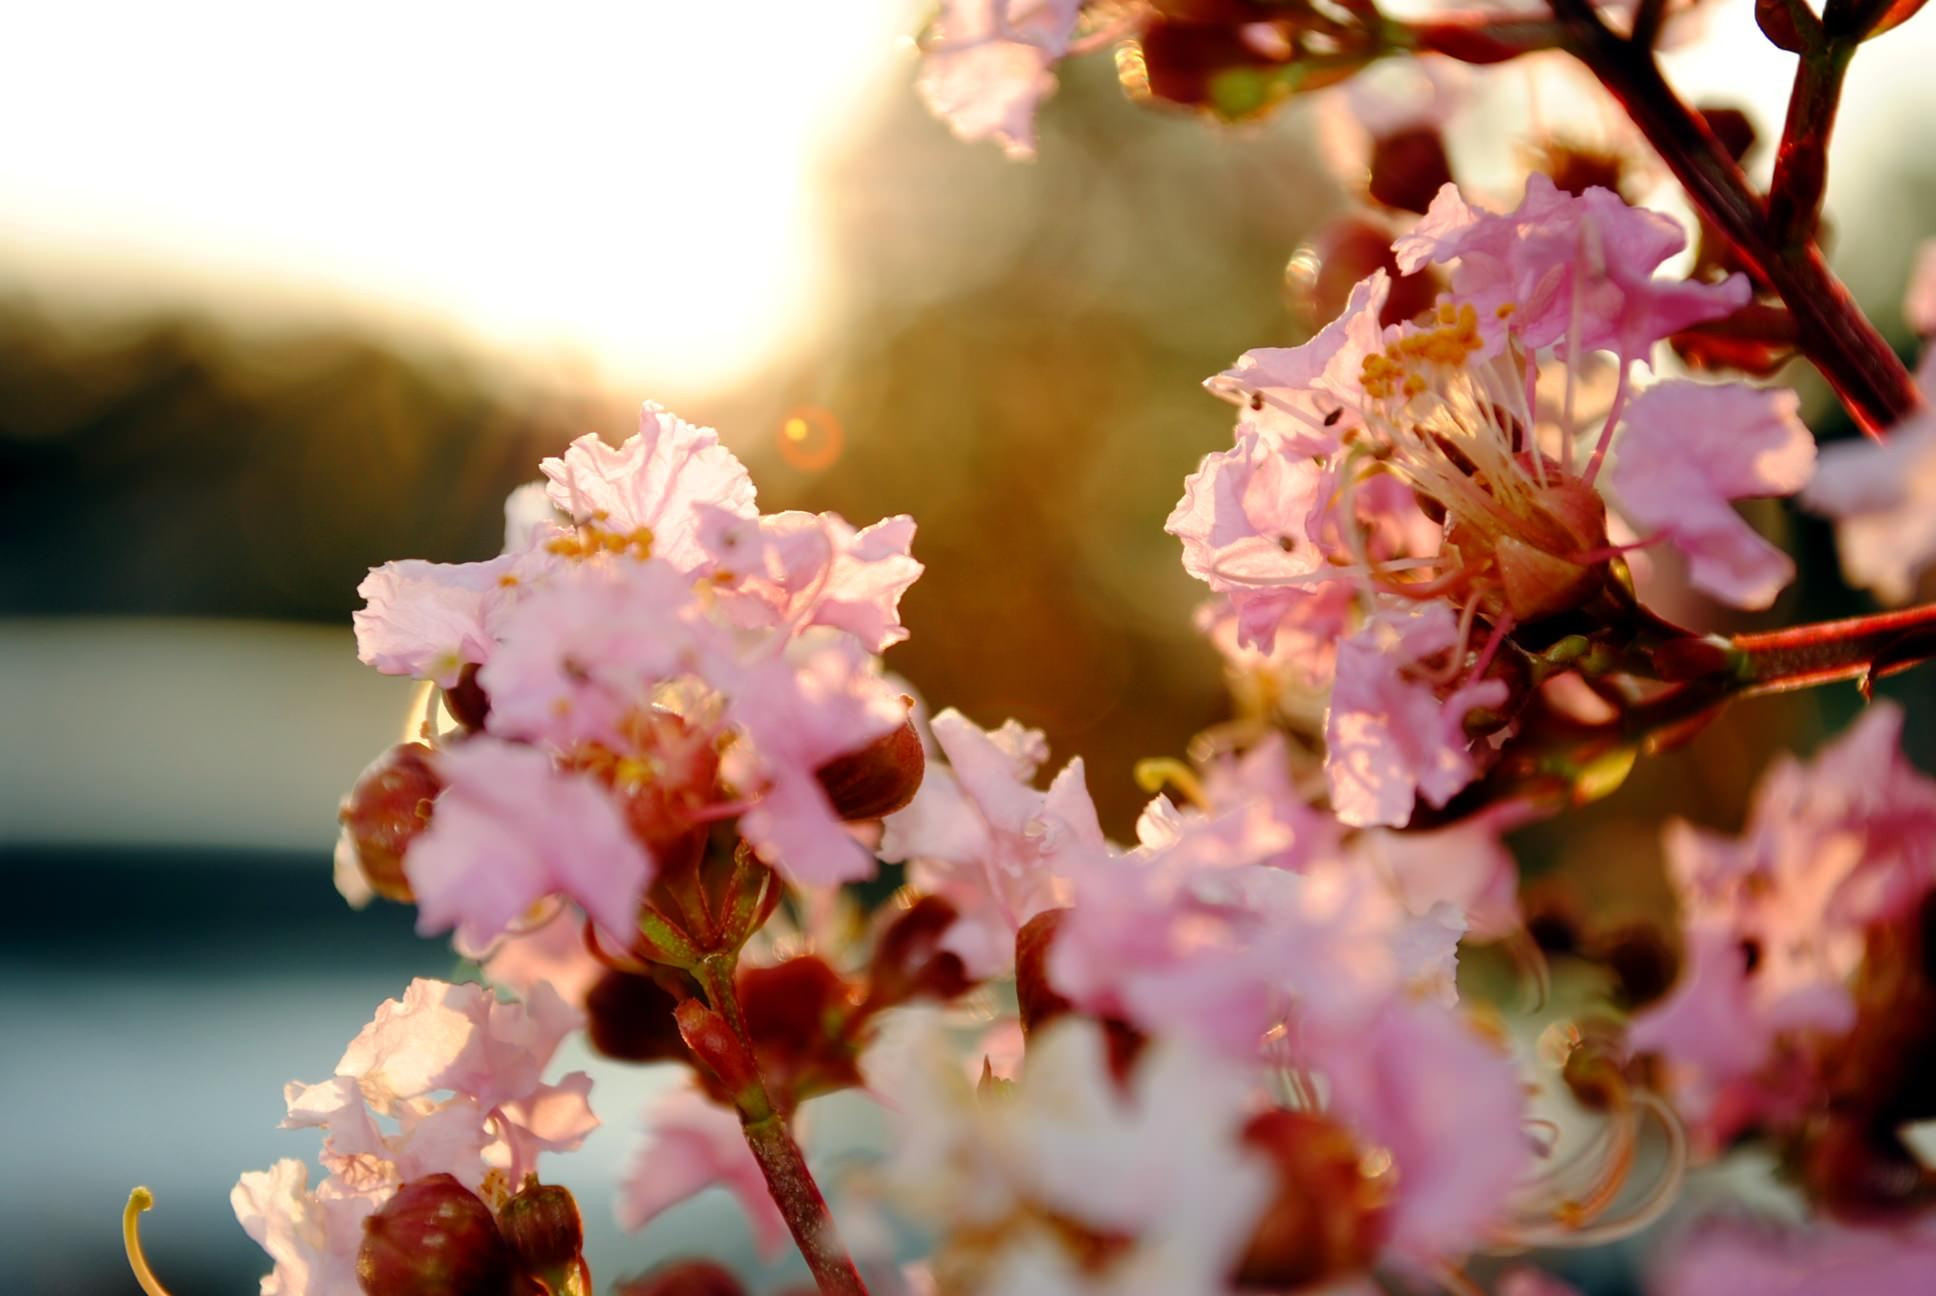 Simple Floral Wallpaper Backgrounds